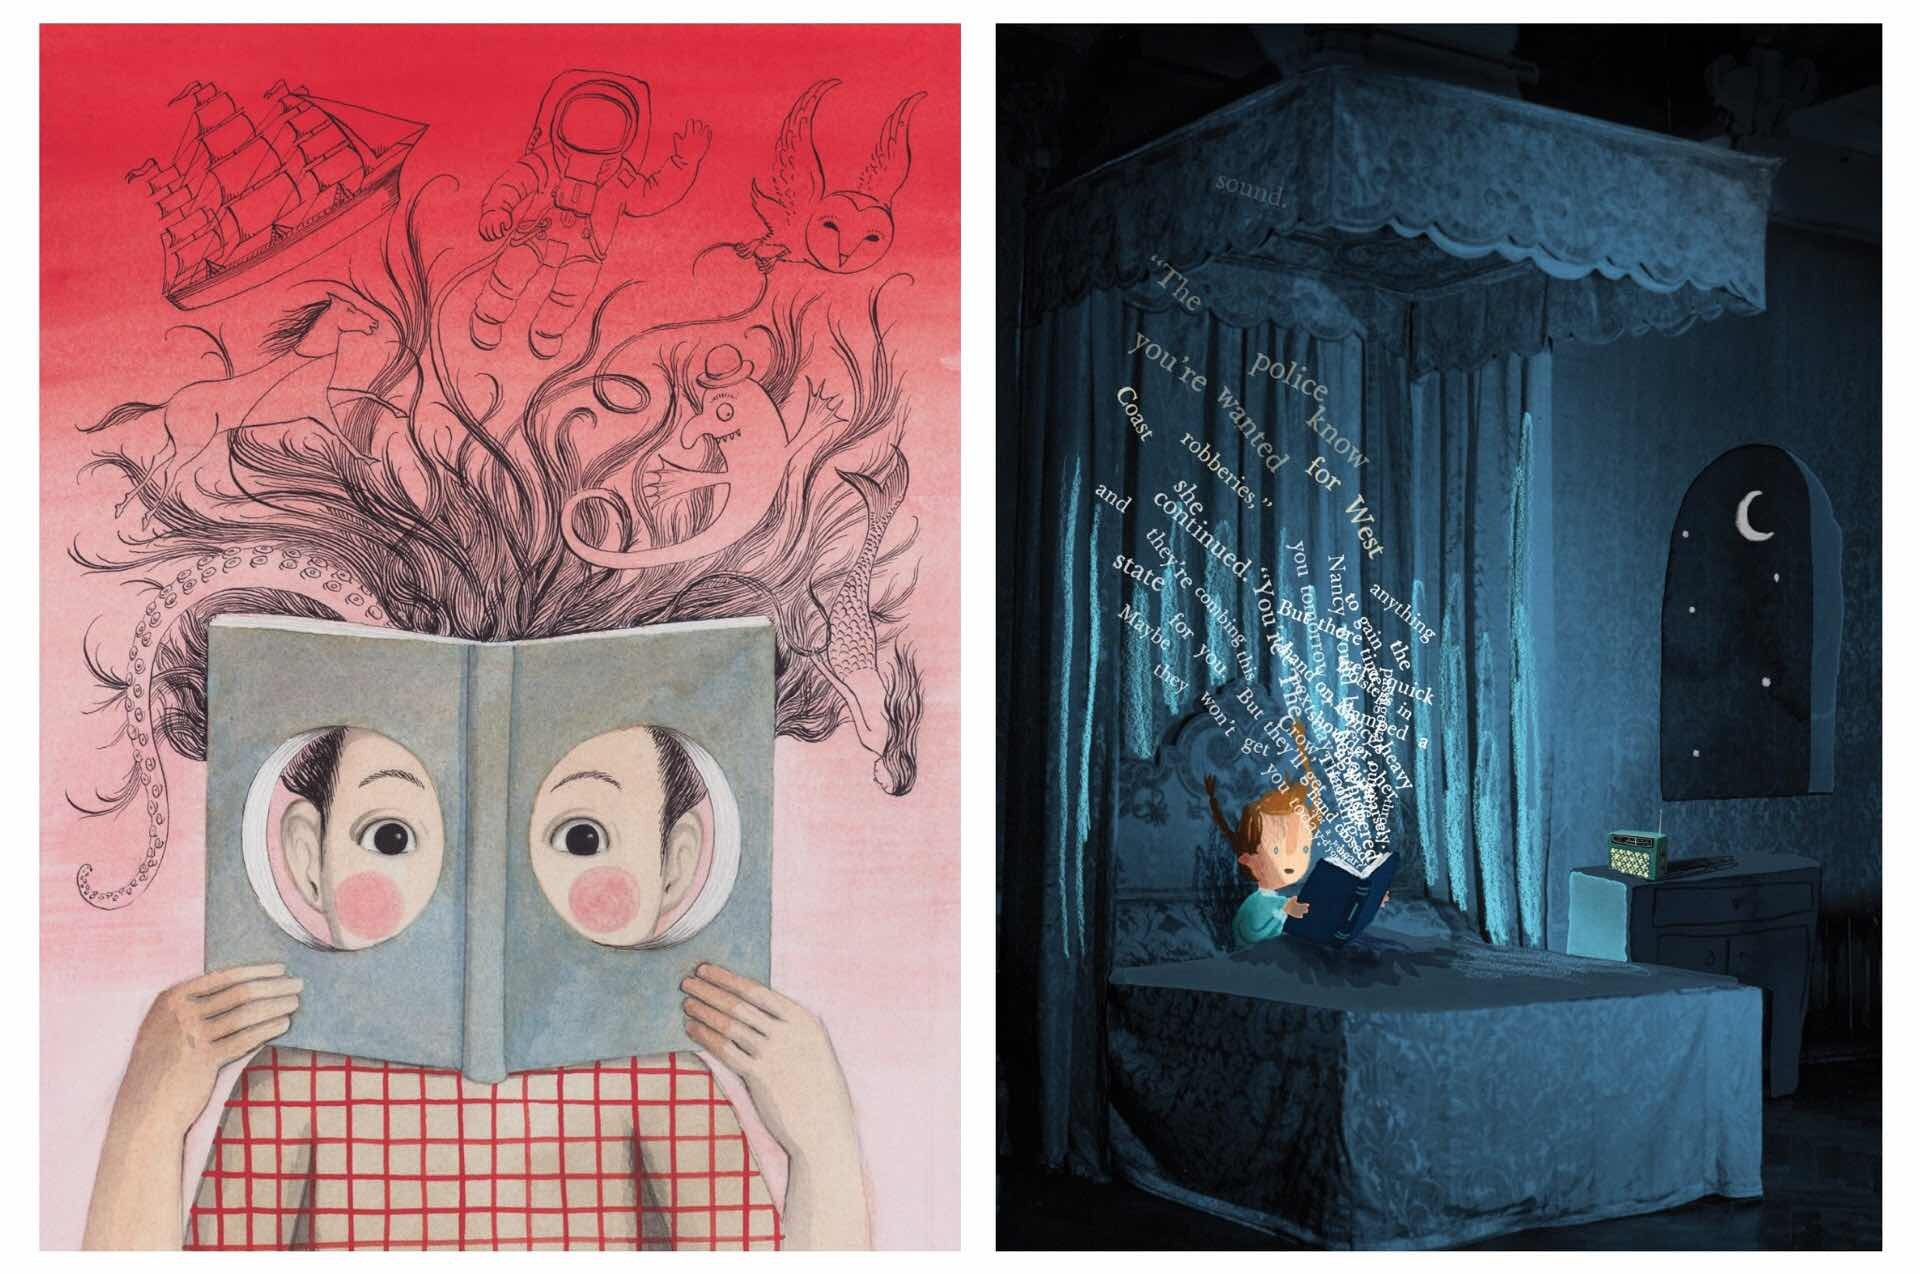 Artwork by Sophie Blackall (left) and Oliver Jeffers (right)